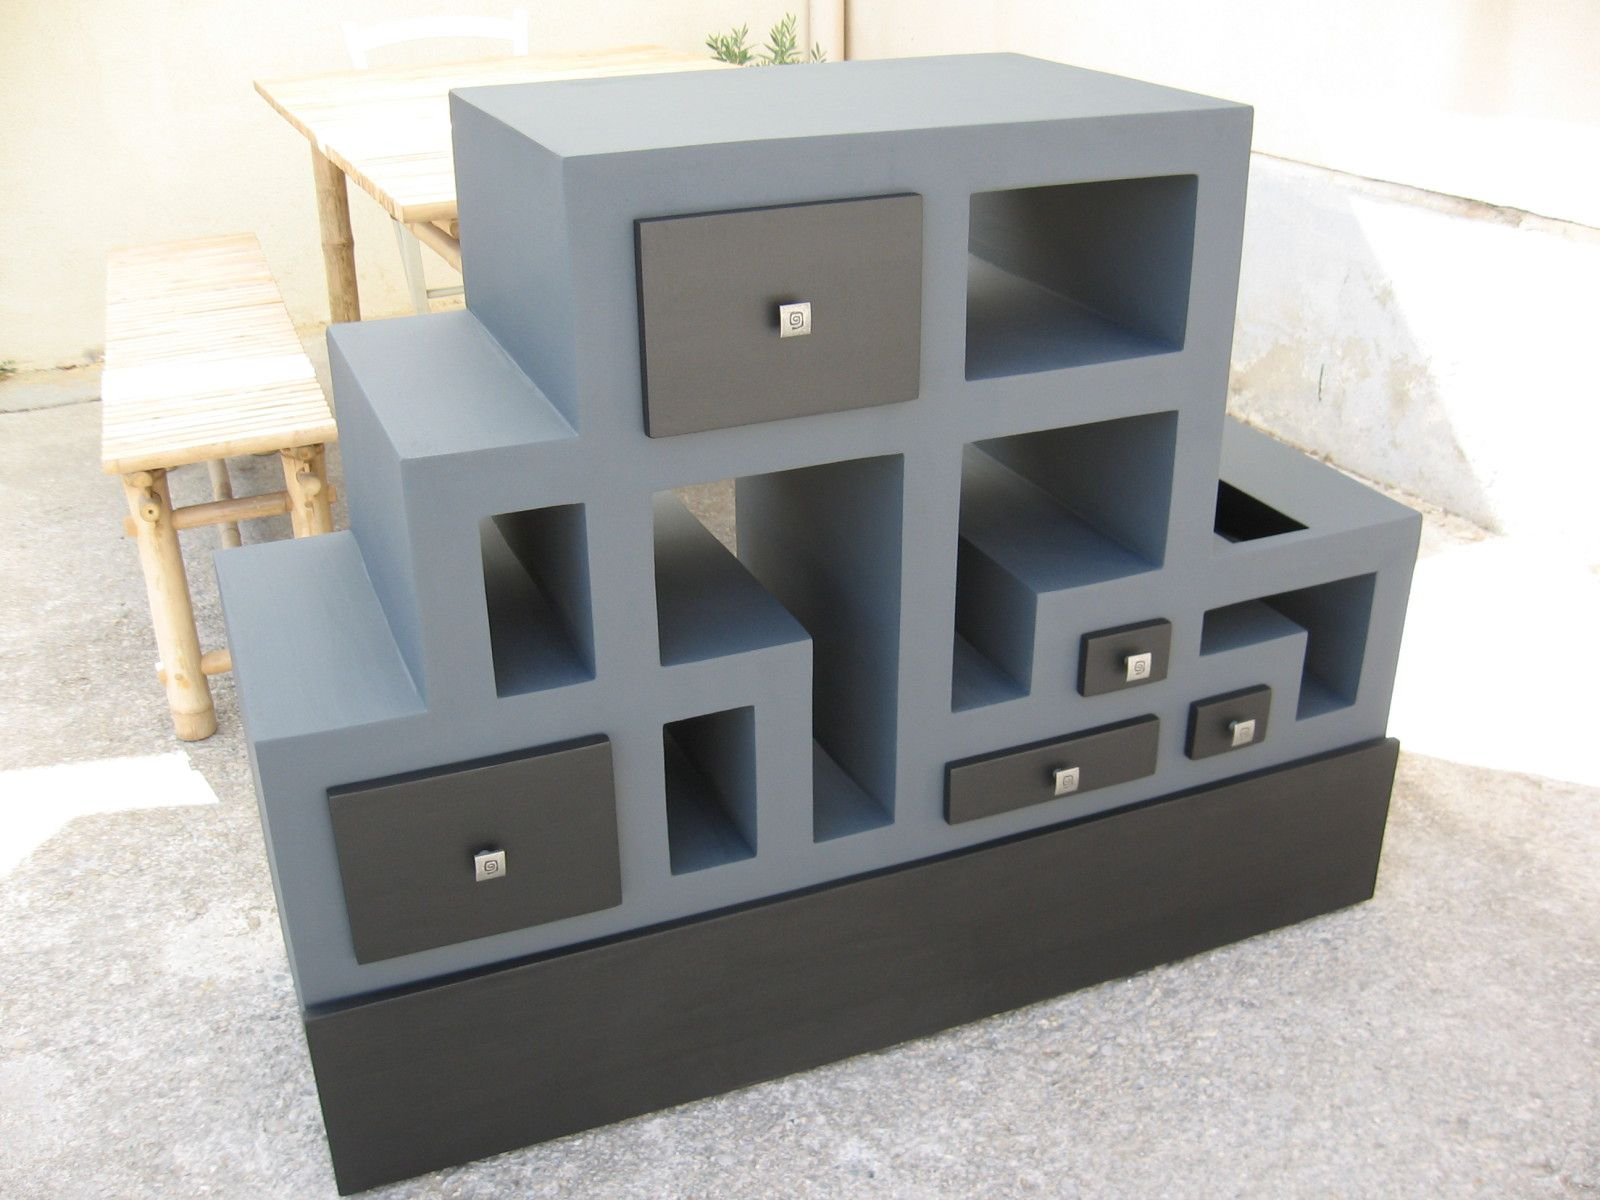 1 re partie du meuble t l en carton termin meubles en carton marie krtonne. Black Bedroom Furniture Sets. Home Design Ideas